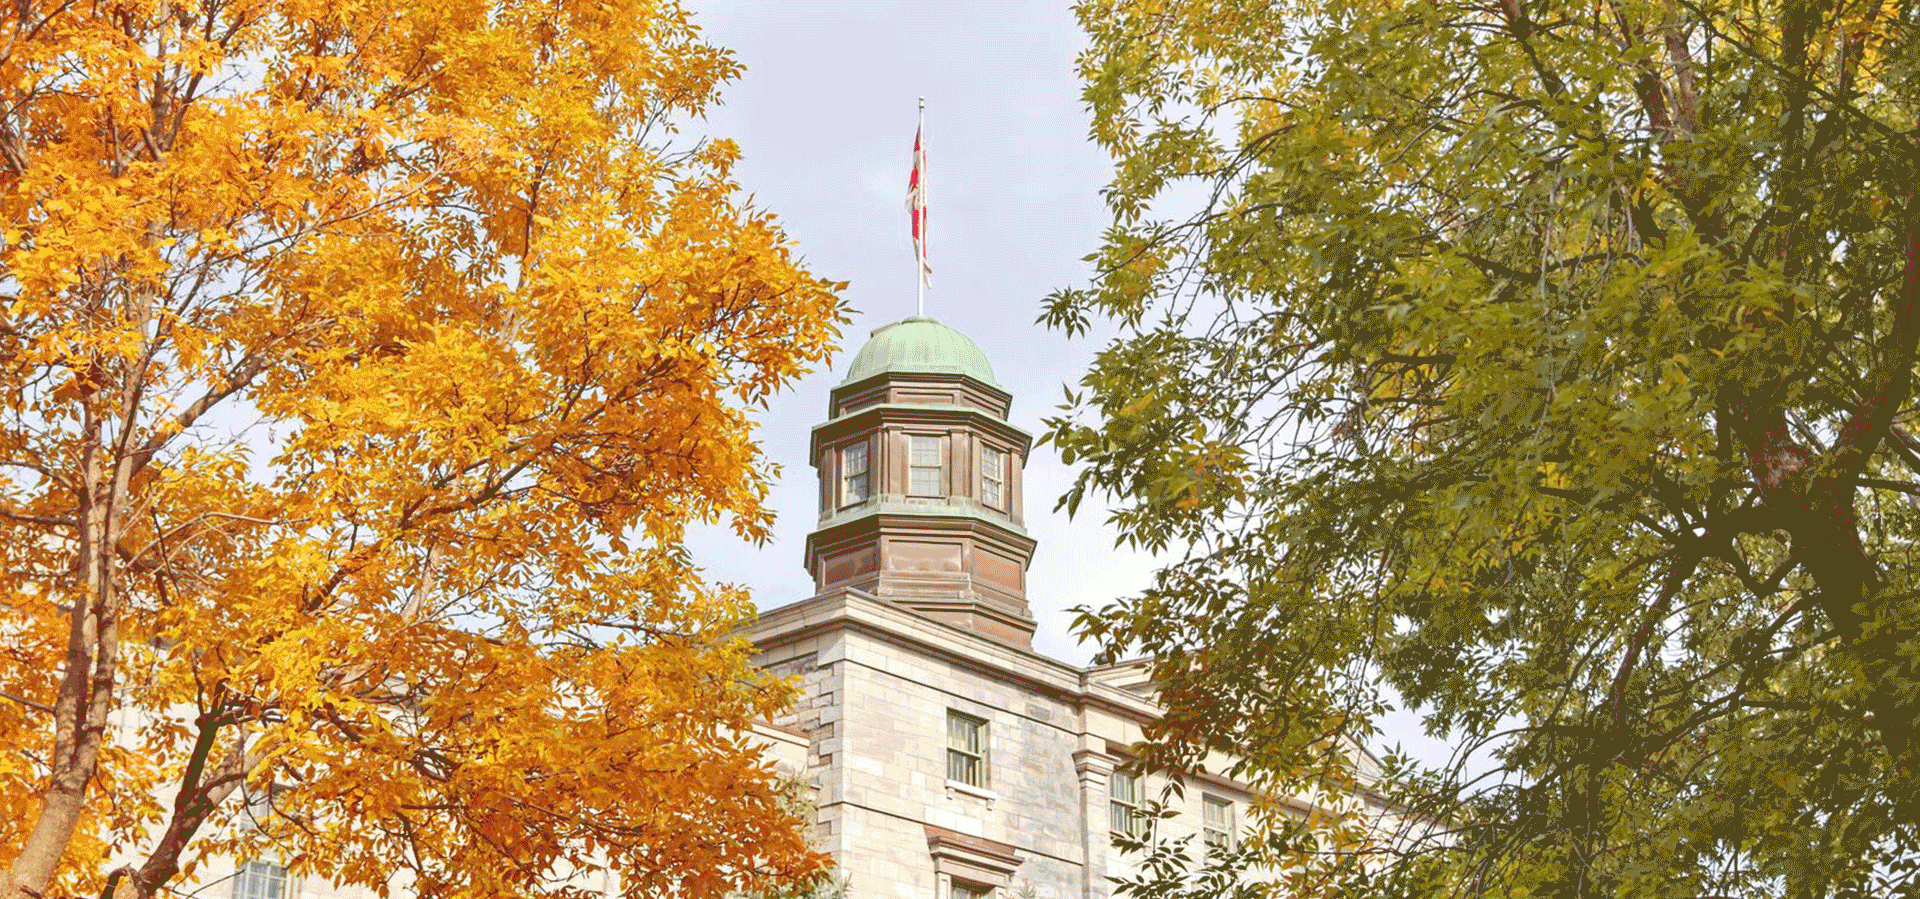 McGill arts building cupola and fall foliage